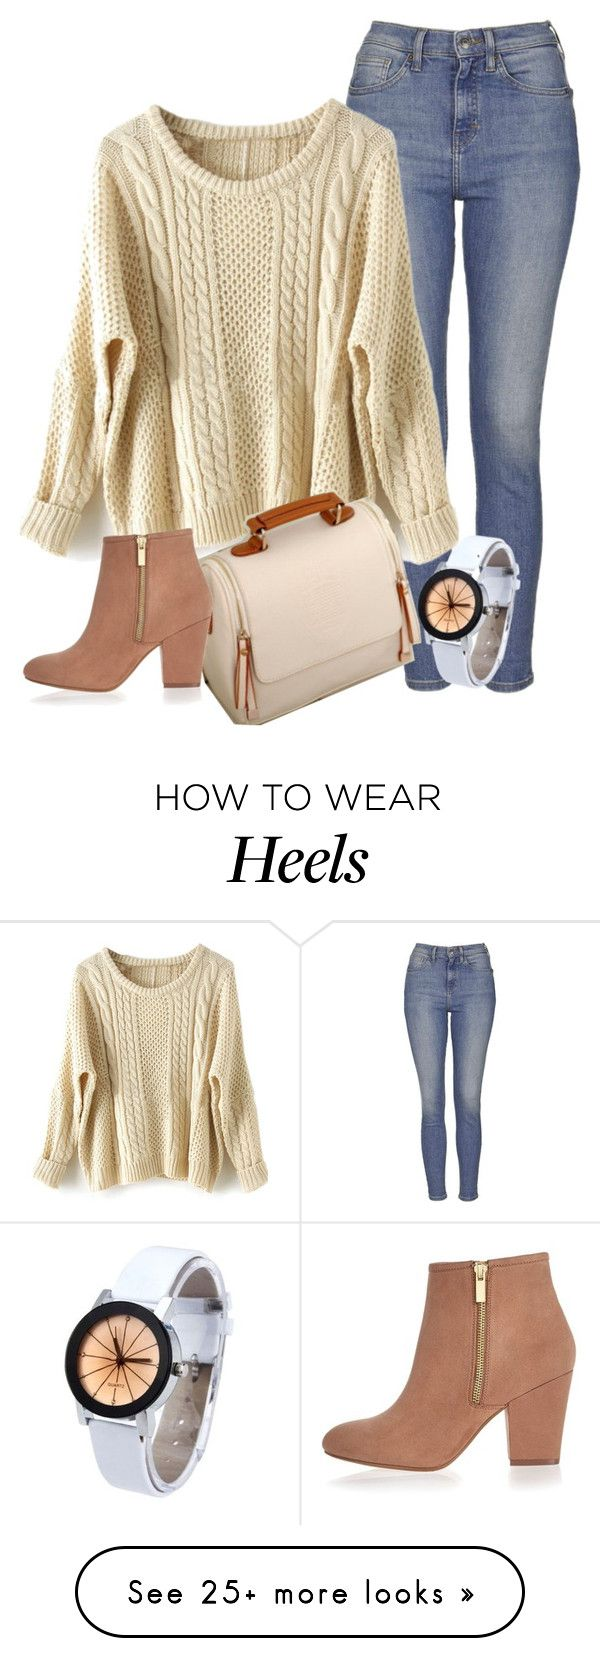 """""""Outfit we love"""" by myfriendshop on Polyvore featuring Topshop and River Island"""